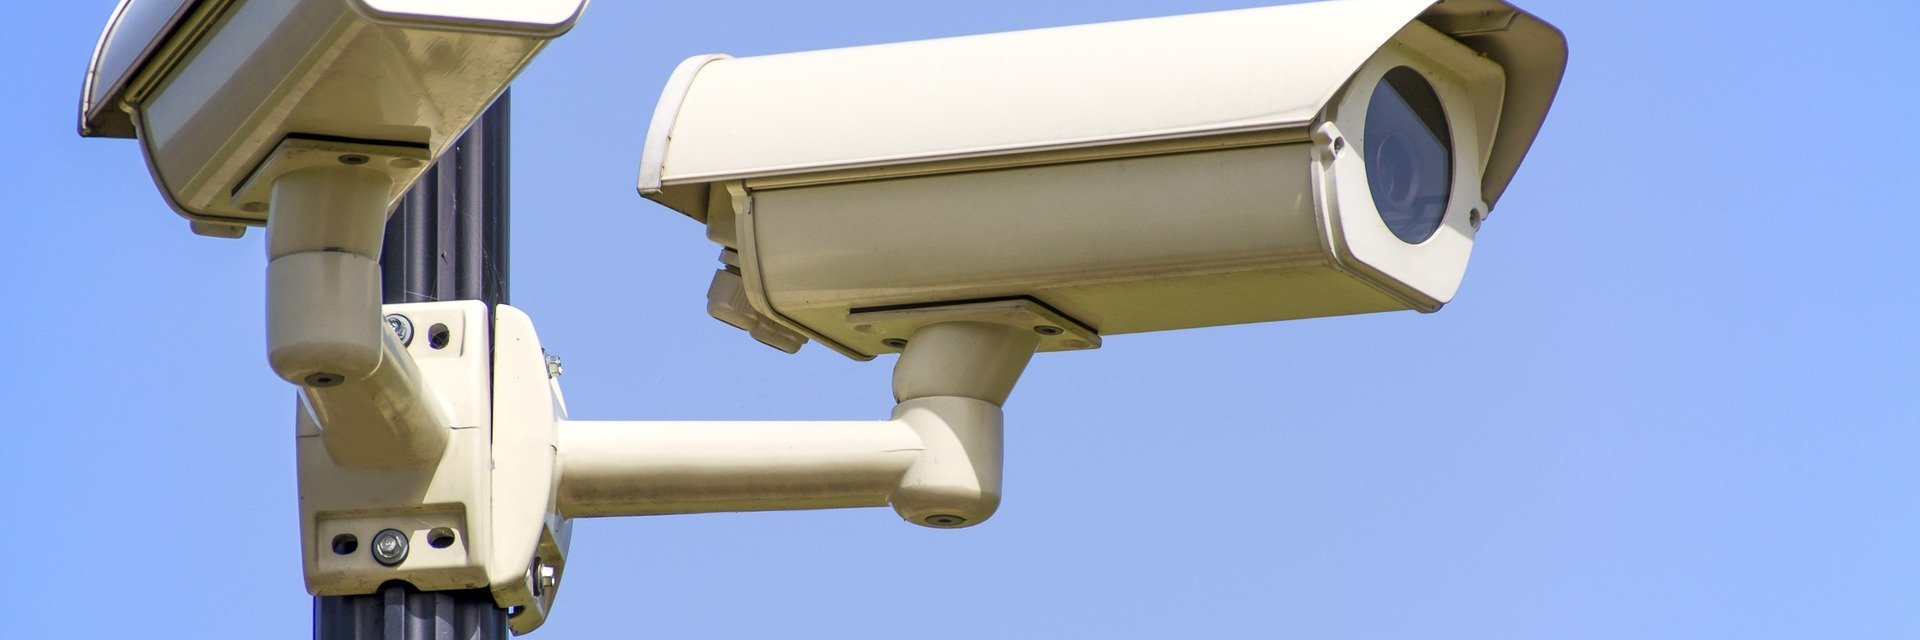 CISOs Will Need To Invest In Anti-surveillance Technologies